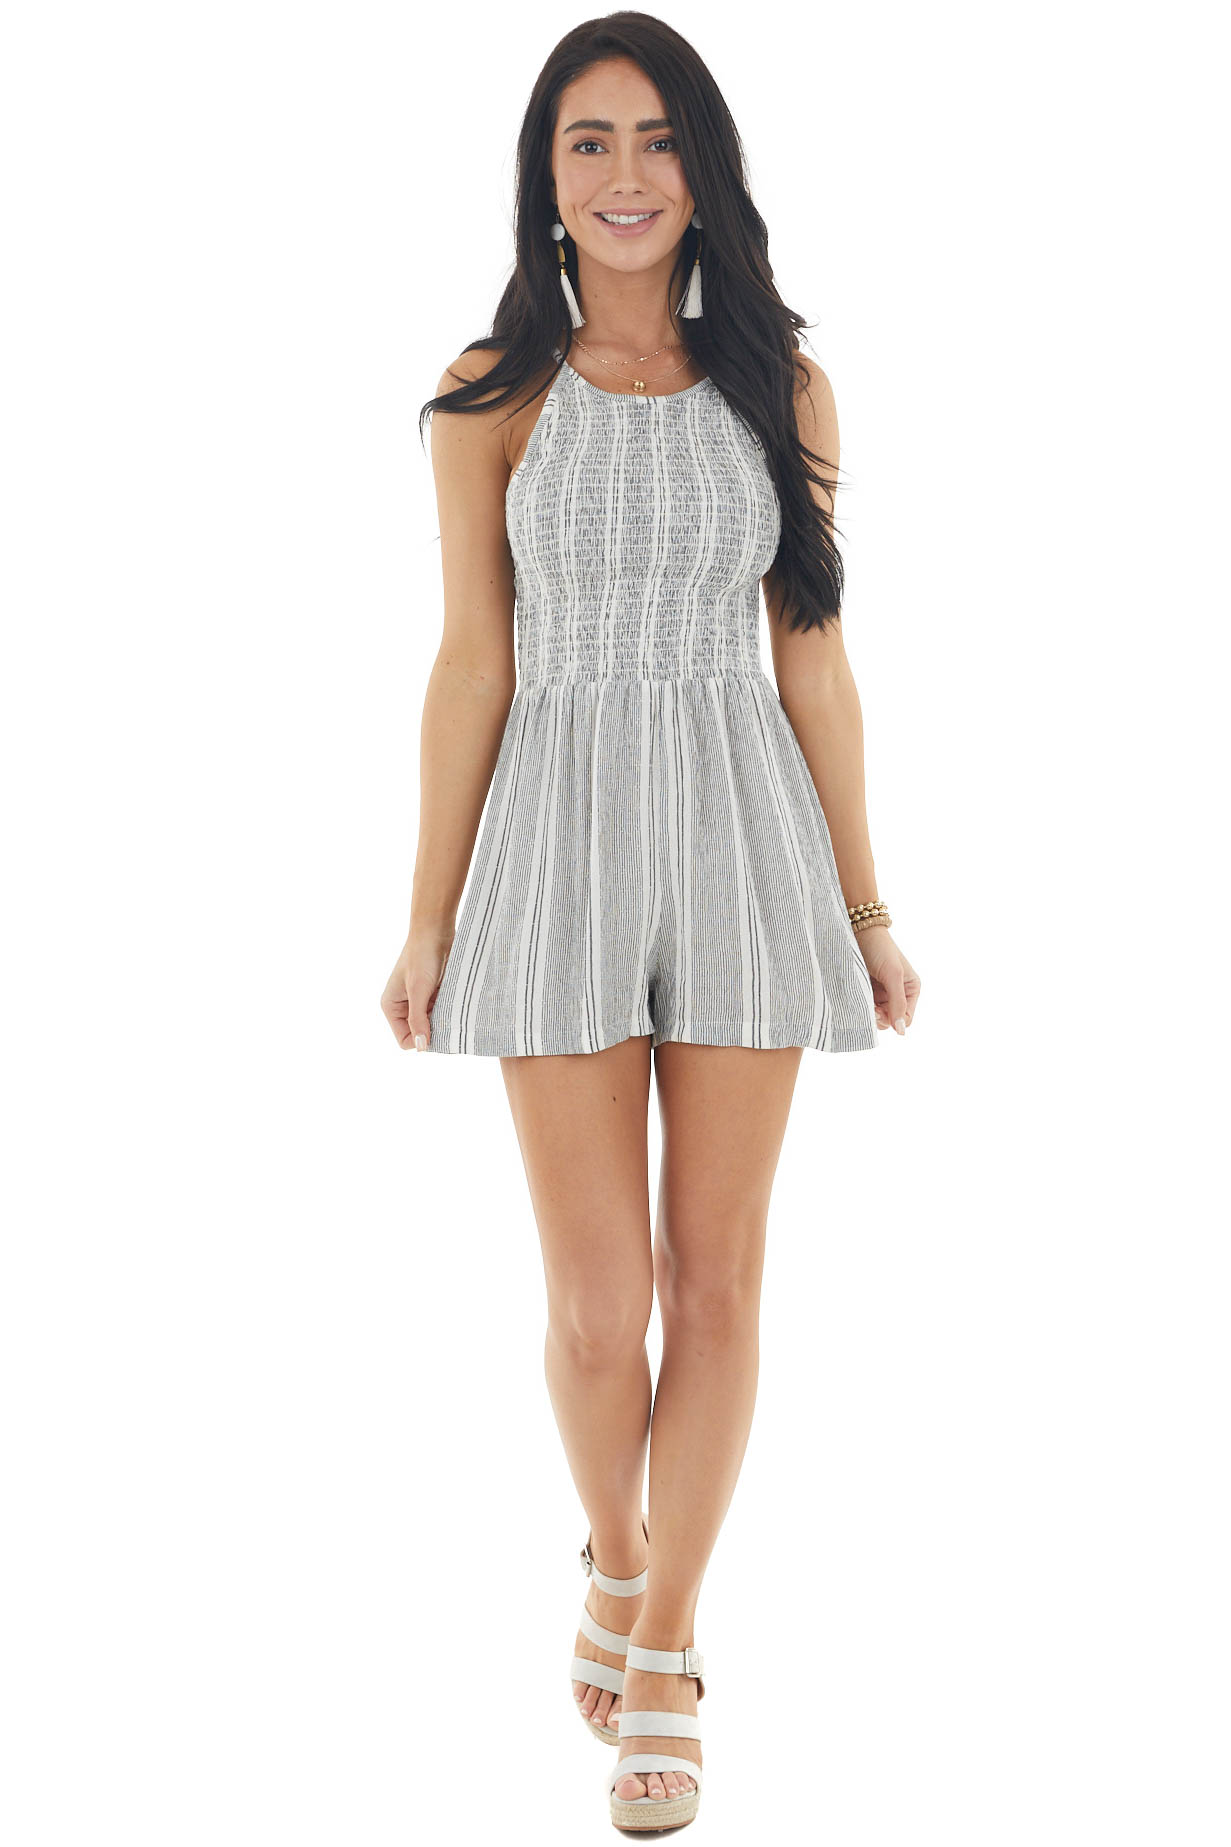 Faded Black and White Striped Sleeveless Smocked Romper